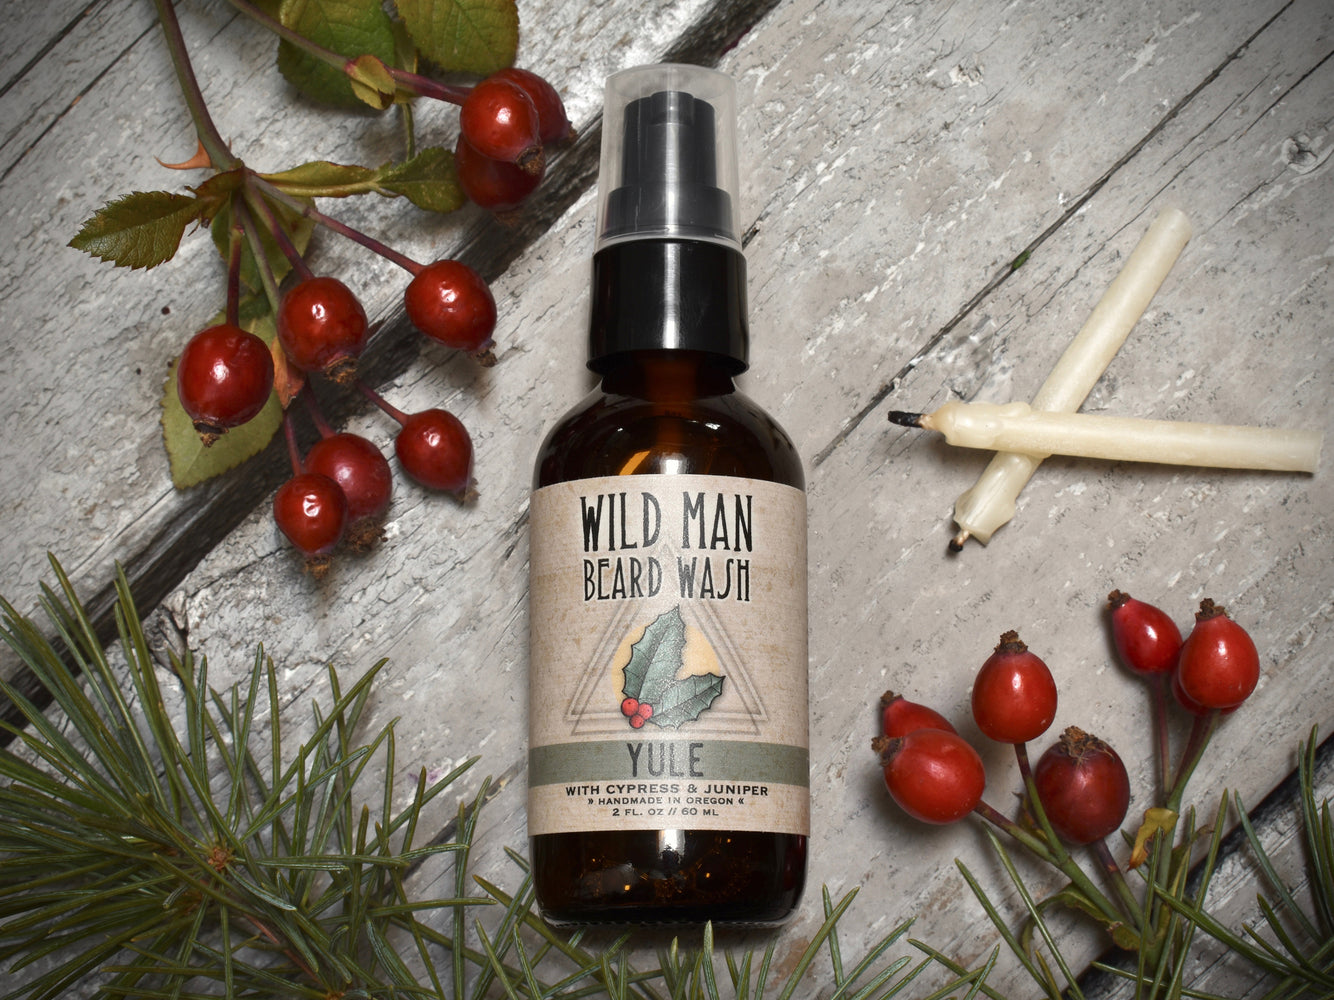 Wild Man Beard Wash - Yule